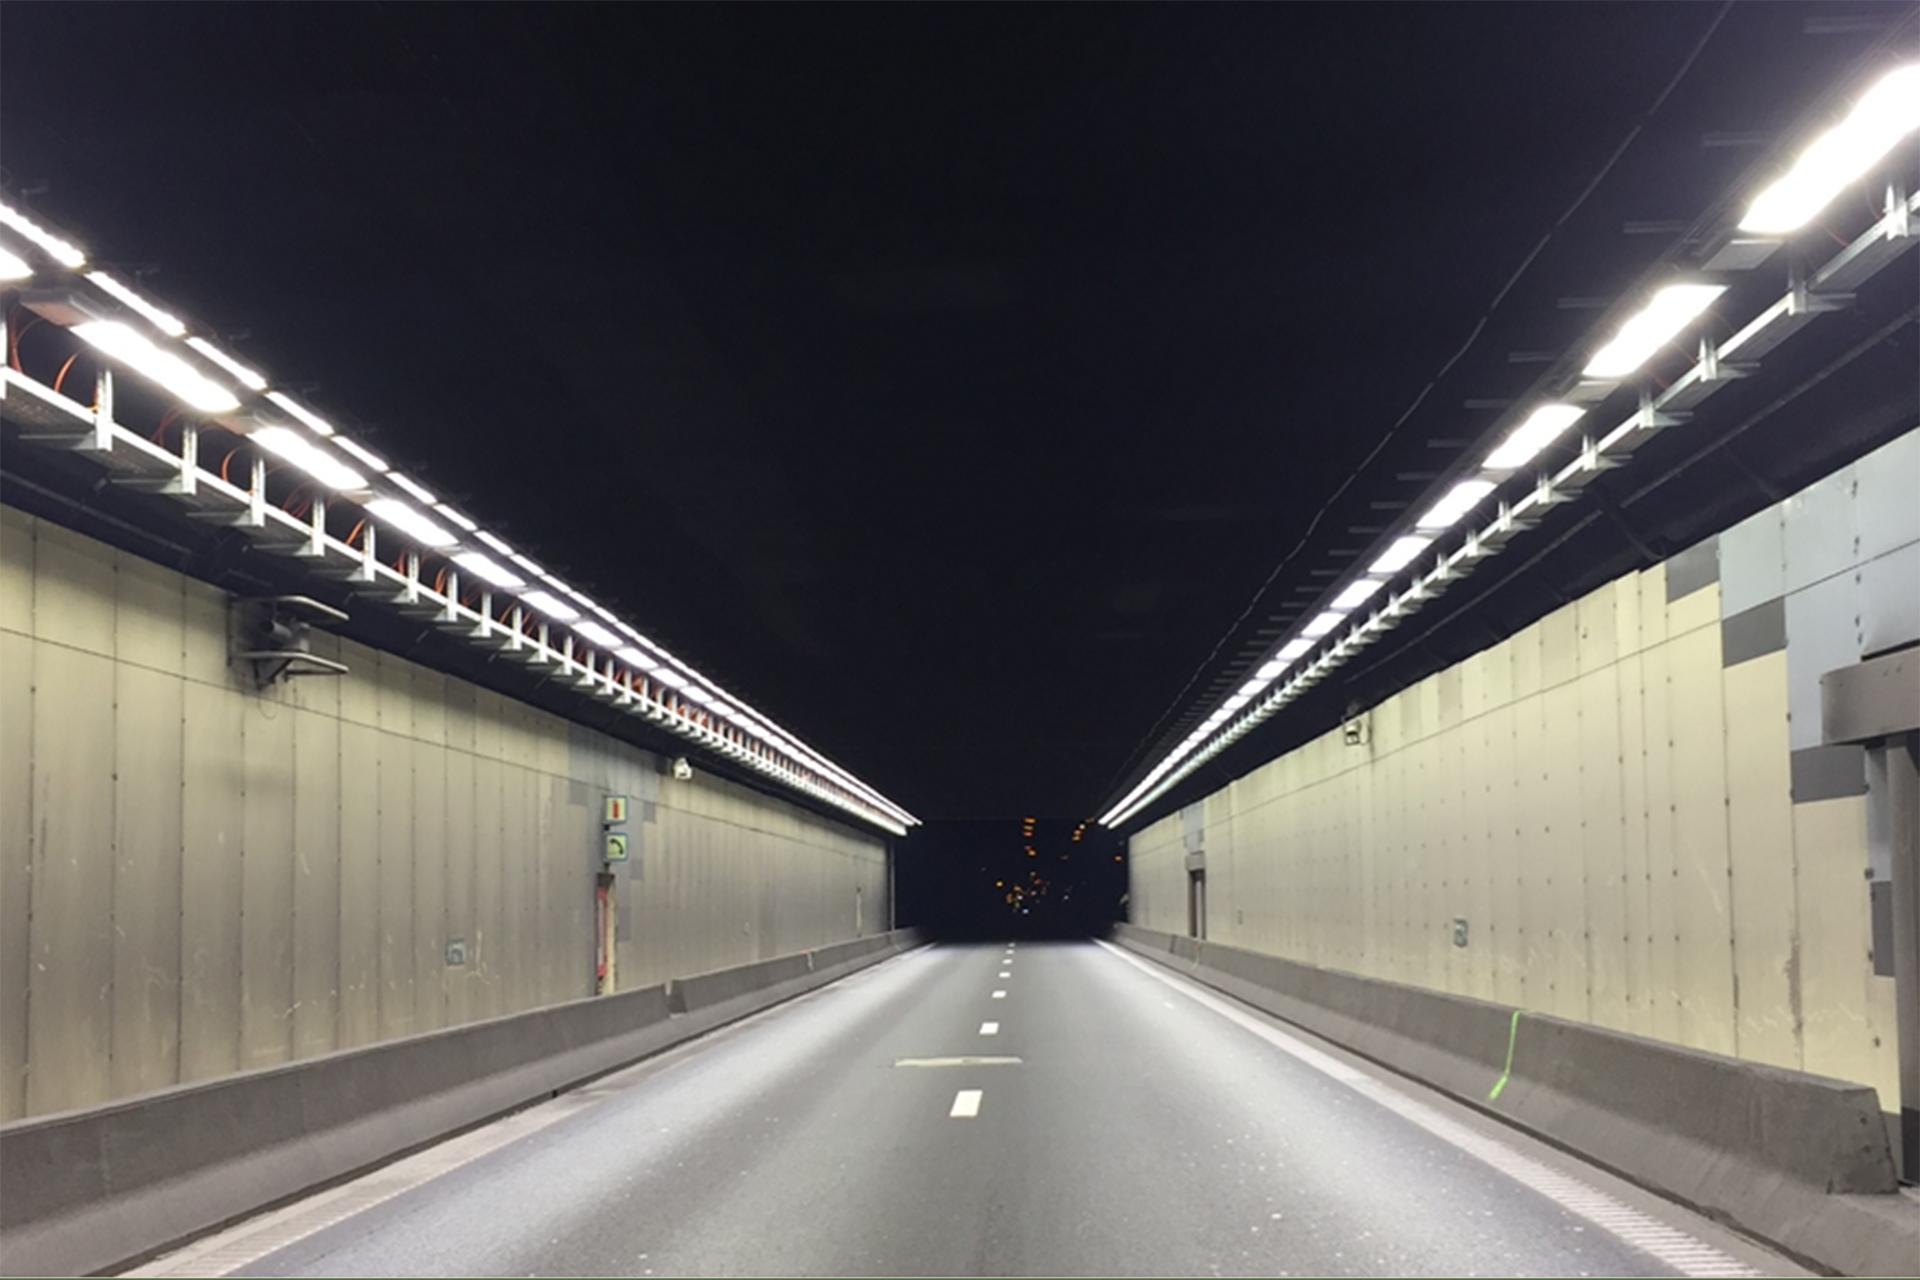 Schréder's tunnel lighting solution ensures safety and an optimal driving experience